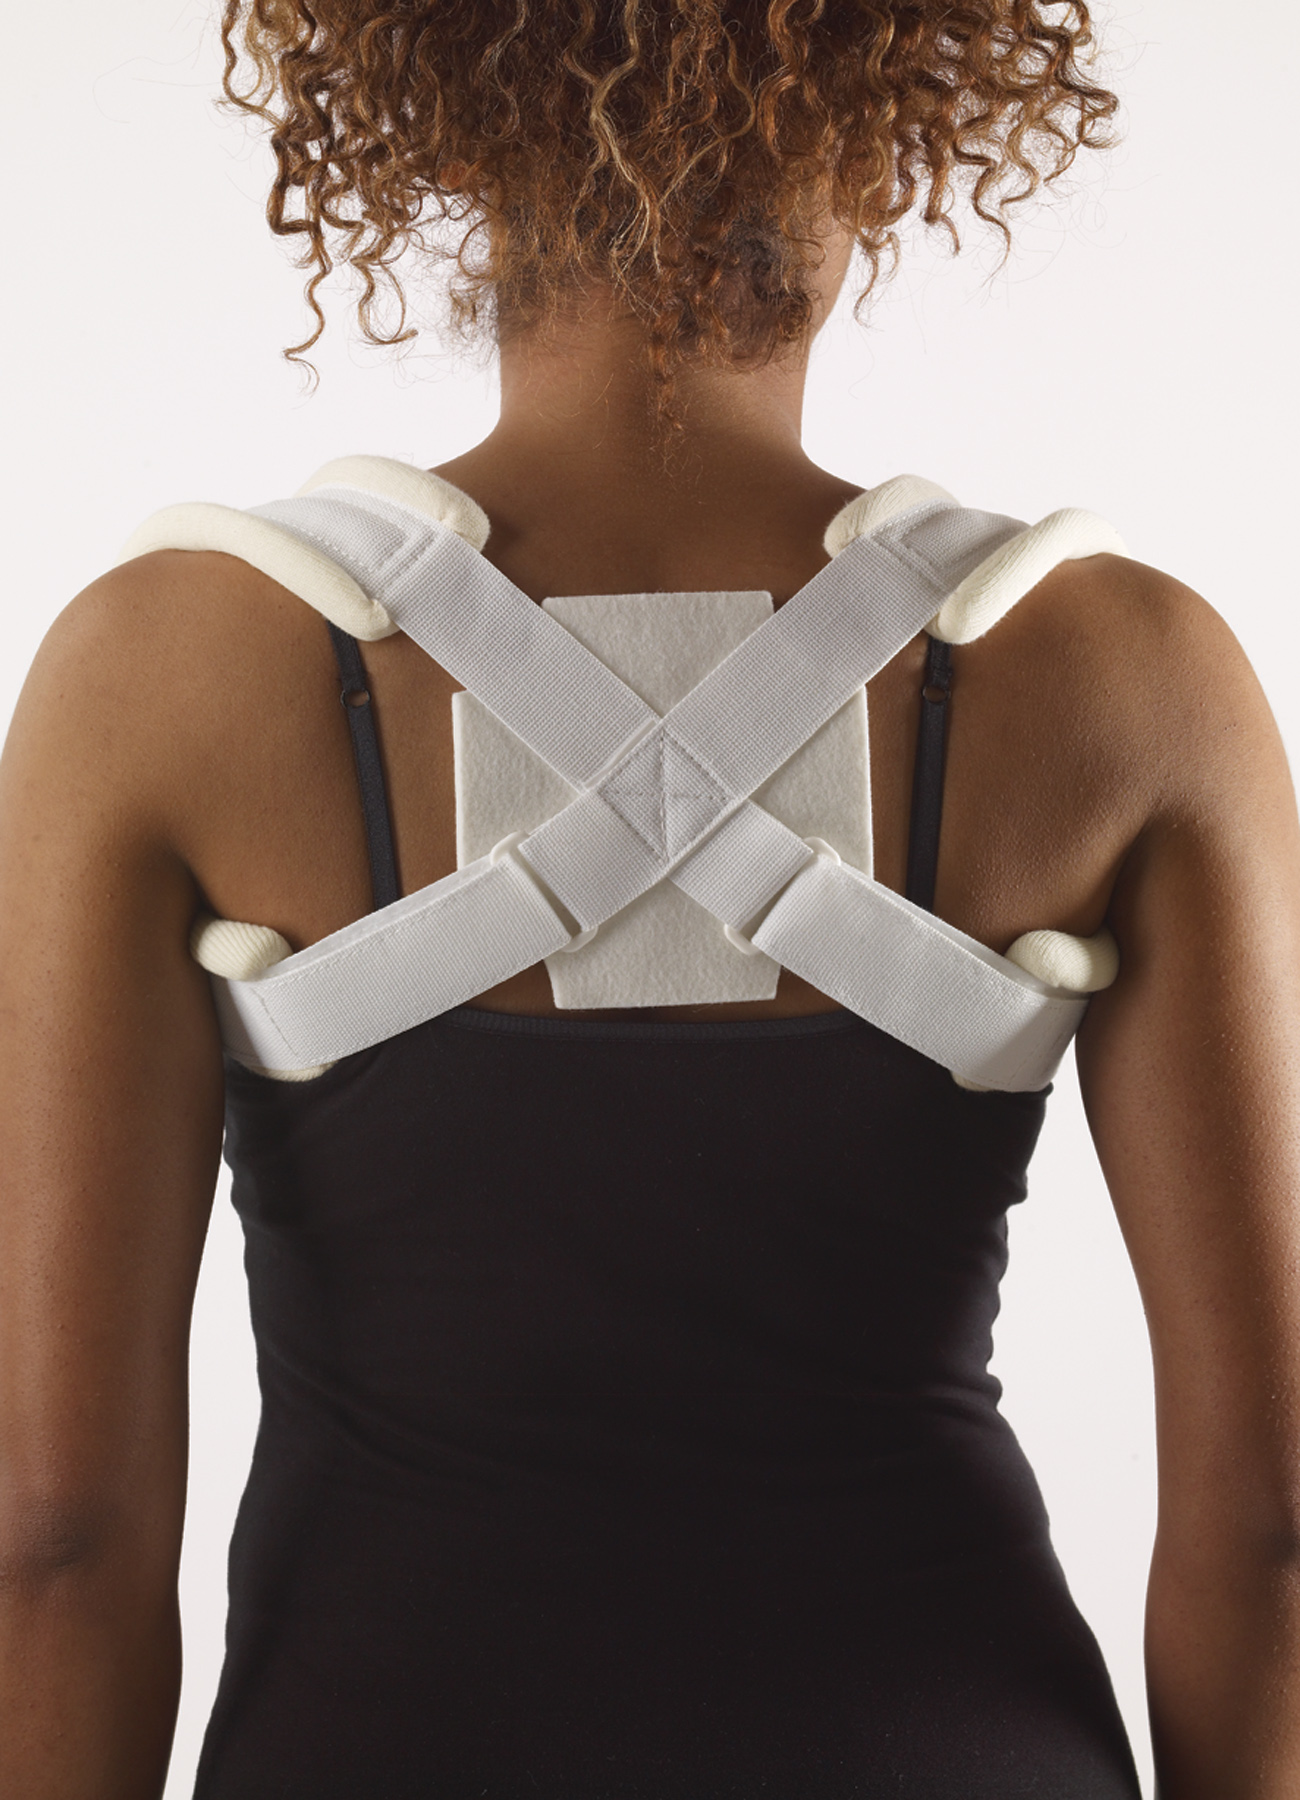 Ultra Clavicle Strap